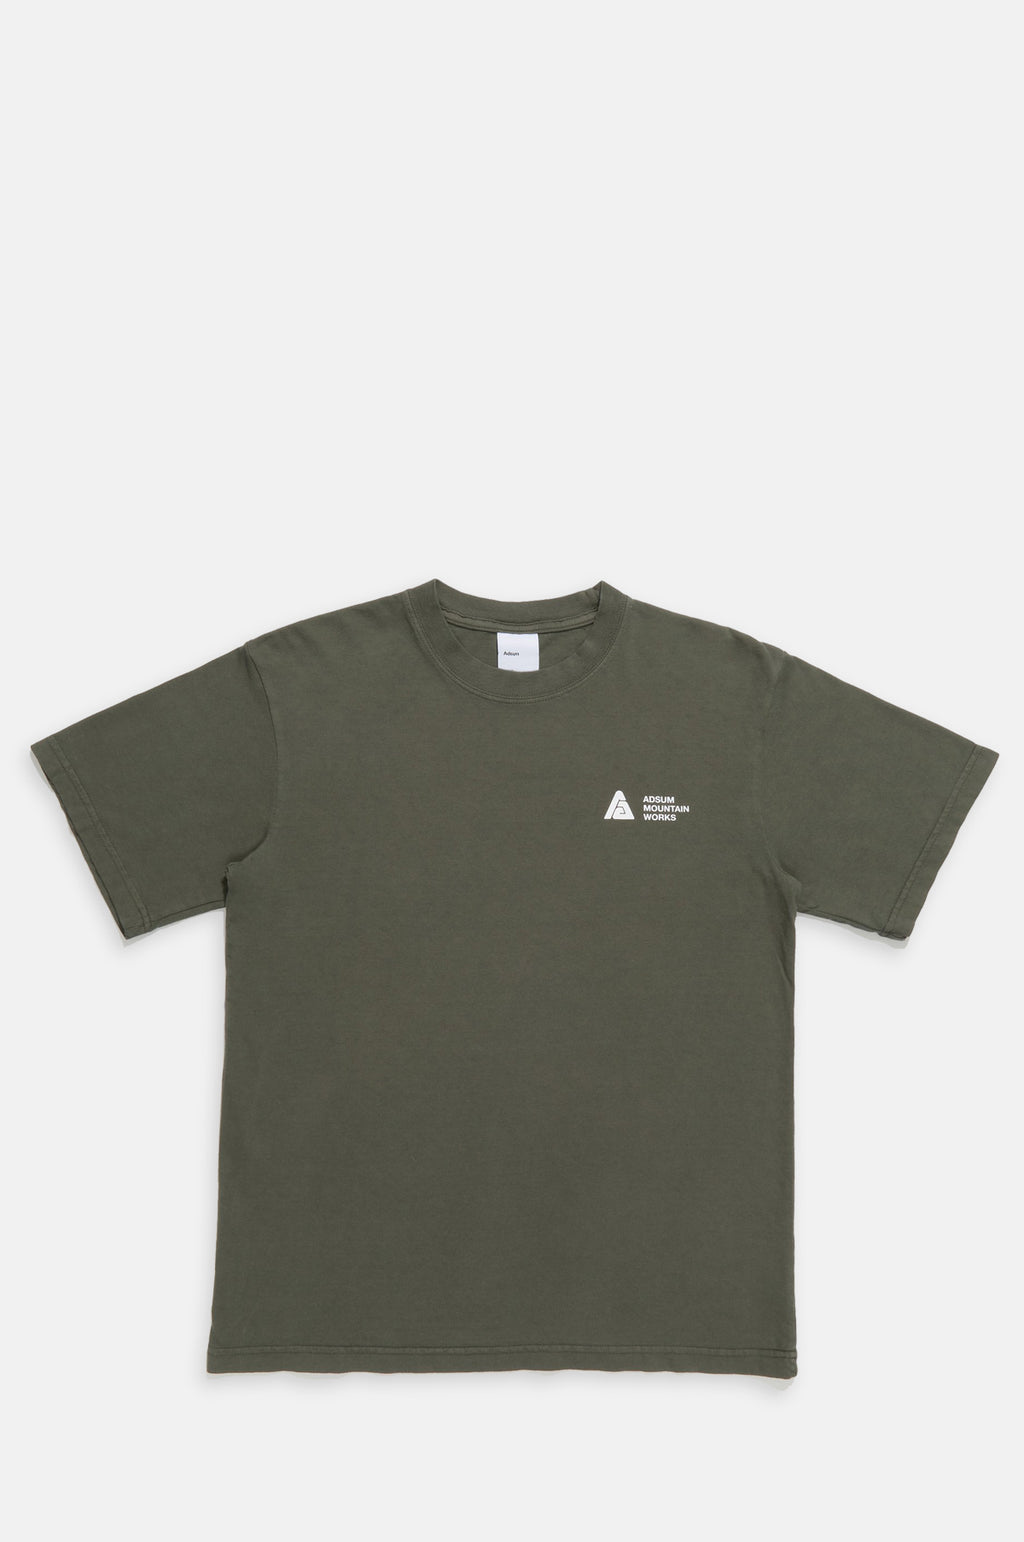 Adsum Mountain Works T Shirt in Ash Green